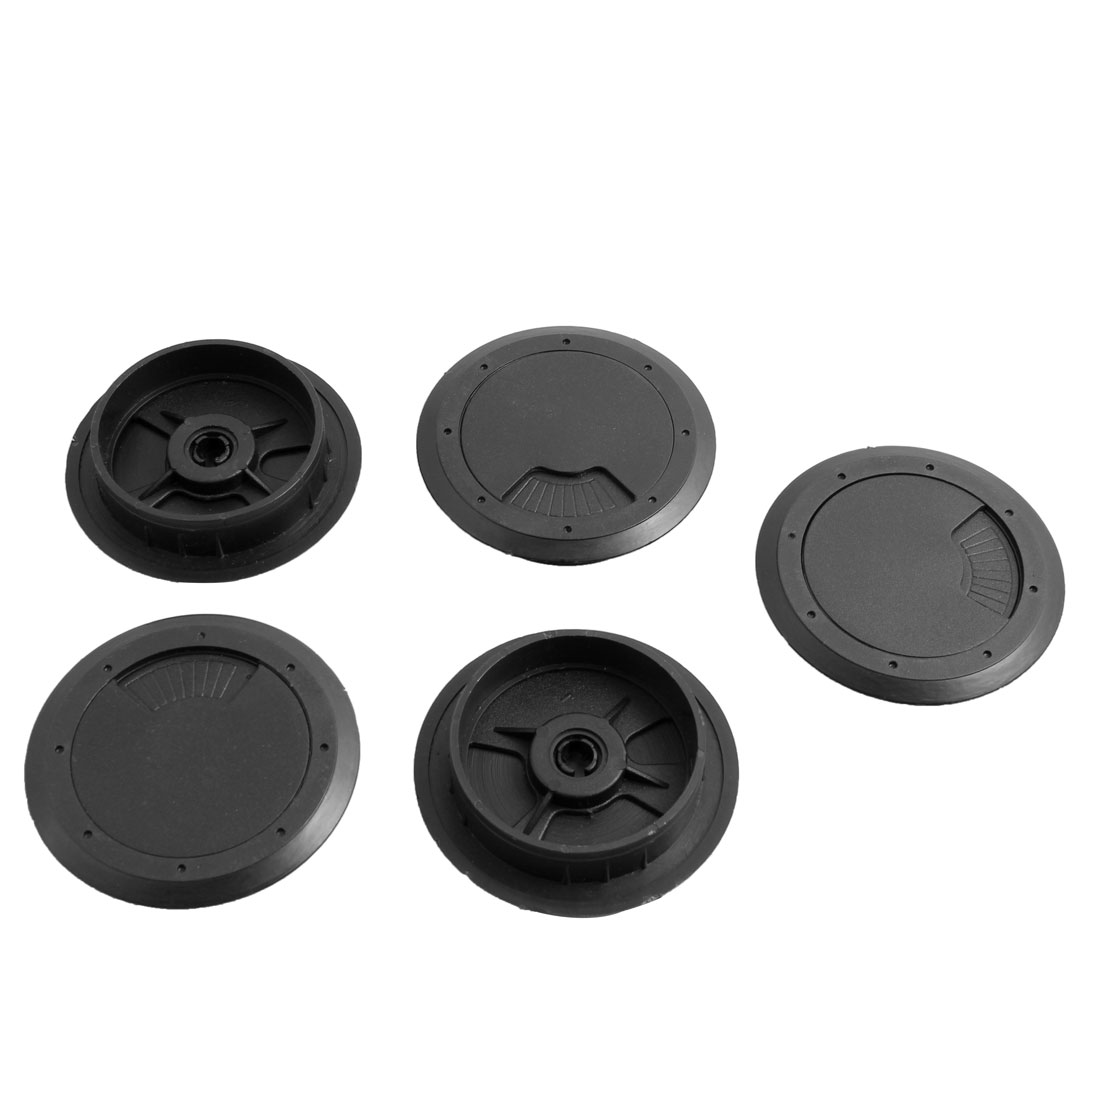 Computer Desk Threading Box Adjustable Cable Hole Cover Black 60mm Dia 5pcs